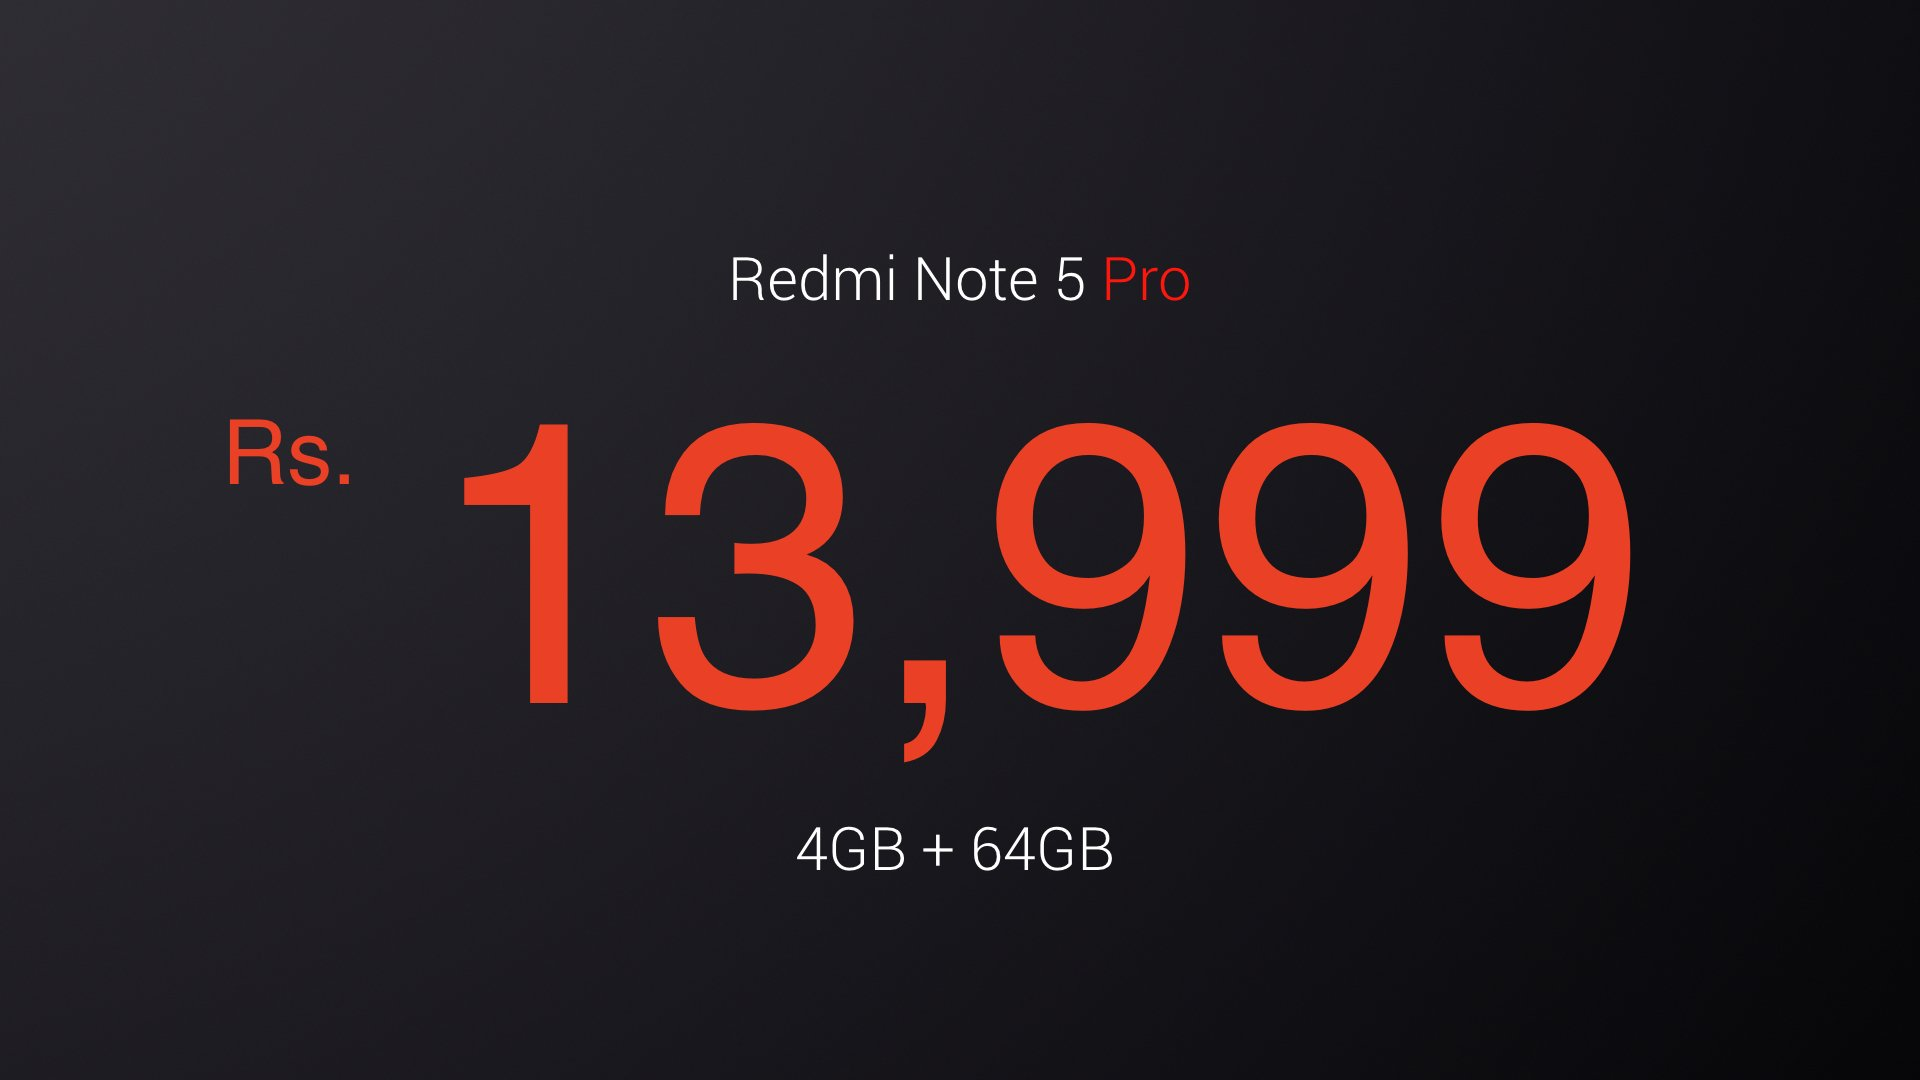 Redmi Note 5 - 4GB + 64GB